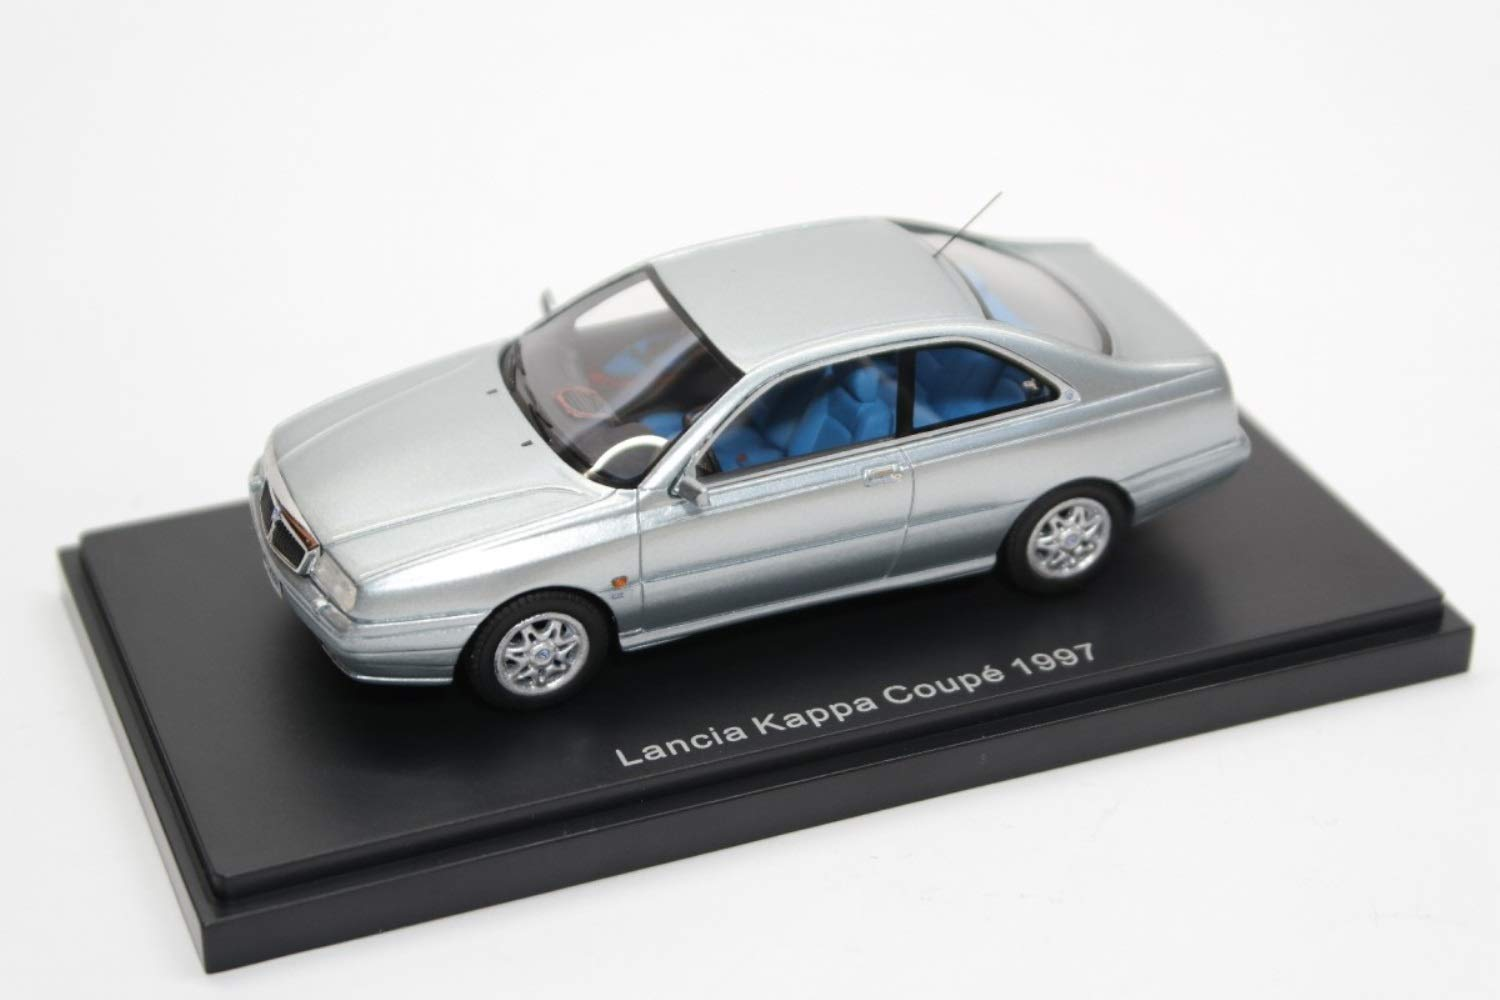 Lancia Kappa Coupé Azzuro Saturno Metallic 1997 Year - Executive car - 1/43 Scale Collectible Model Vehicle - 2-Door Coupe by 1/43 AZEBUY - COUPES